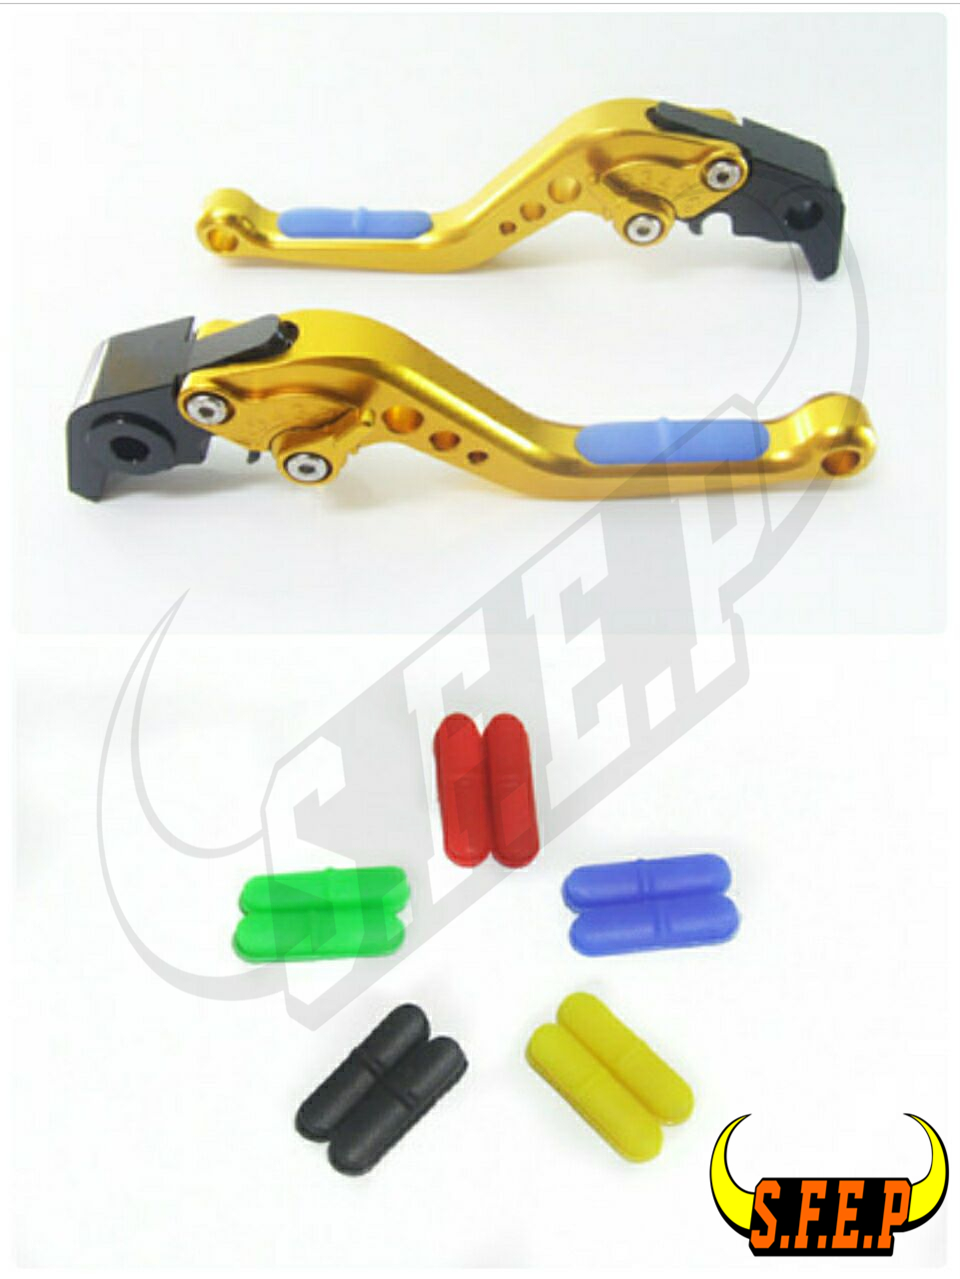 CNC Adjustable Motorcycle Brake and Clutch Levers with Anti-Slip For Suzuki TL1000R 1998-2003